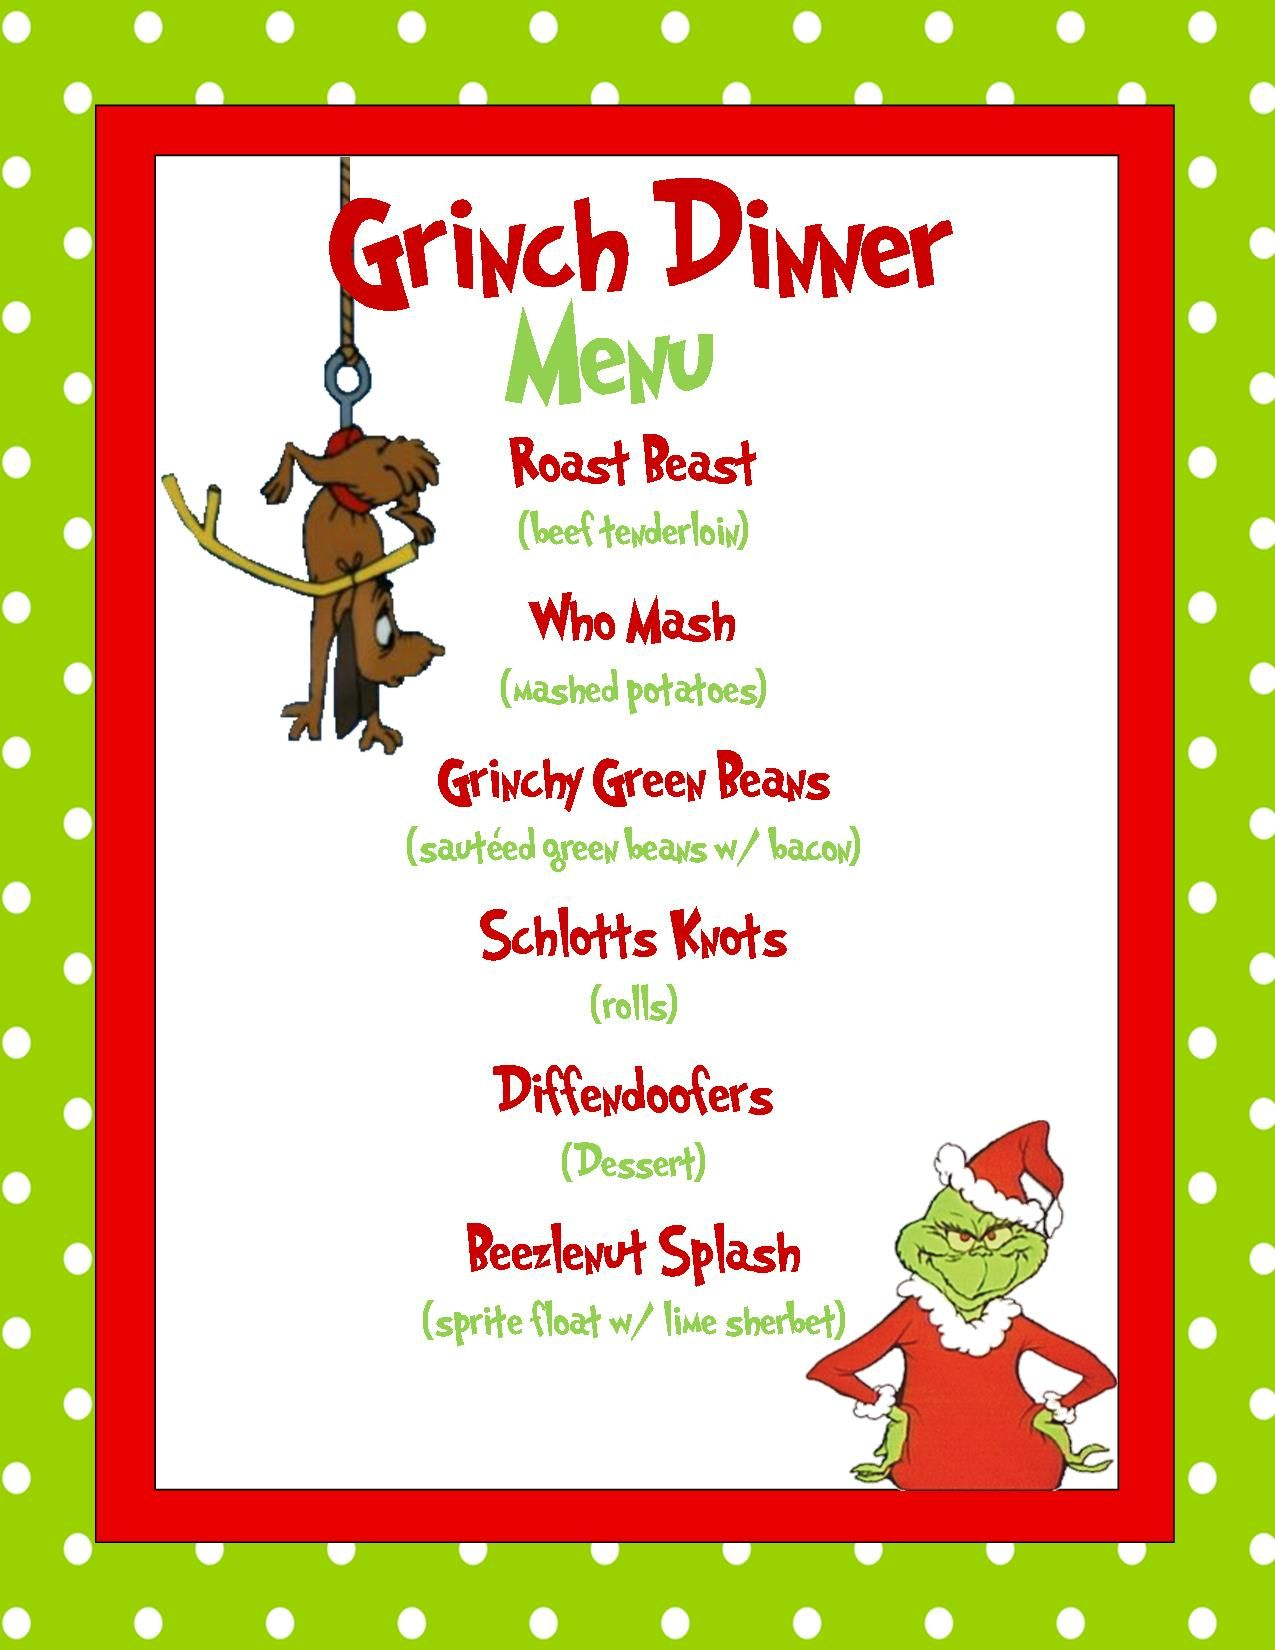 grinch dinner menu sample made in microsoft publisher